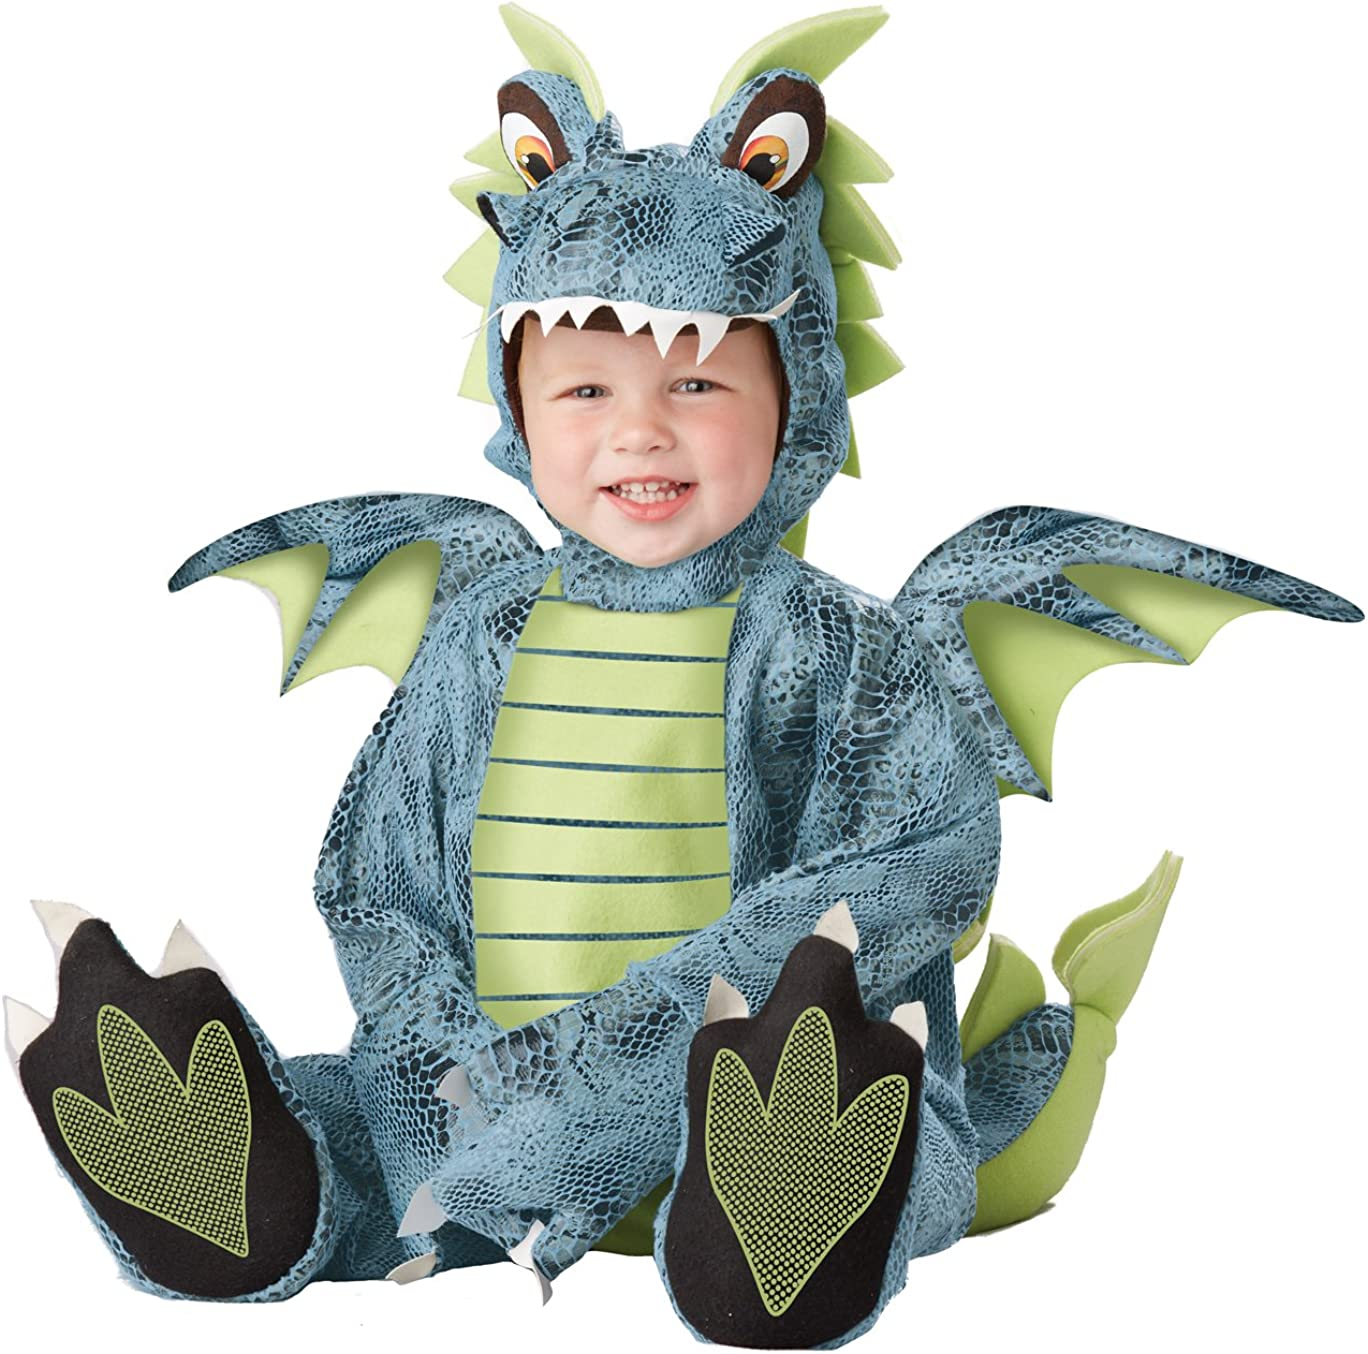 California Costumes Darling Dragon